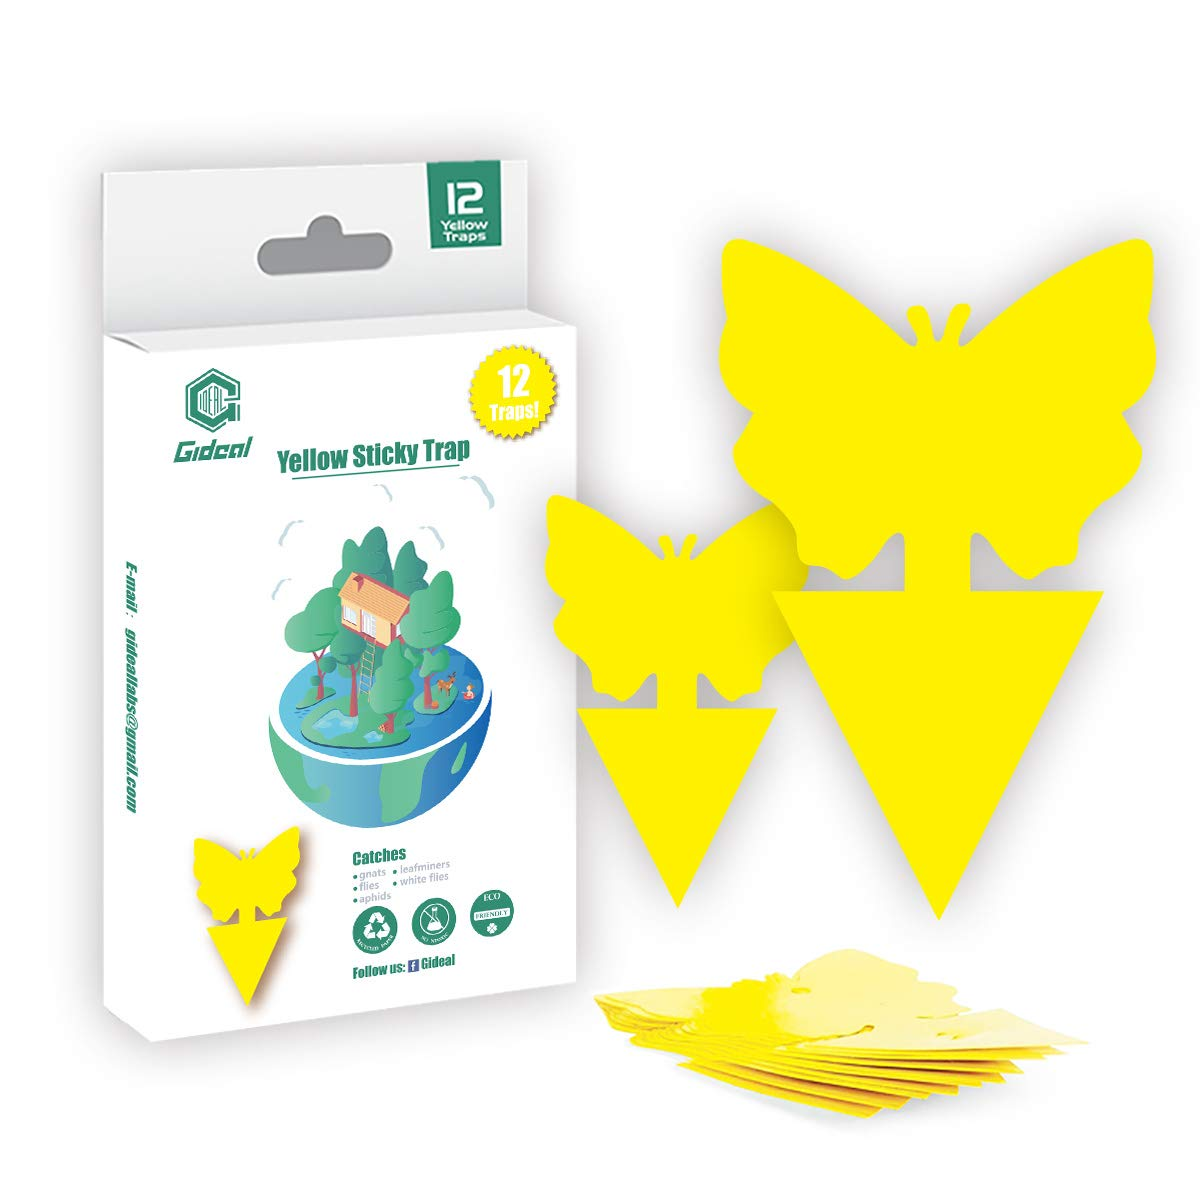 Gideal 12-Pack Dual-Sided Yellow Sticky Traps for Indoor/Outdoor Use, Gnat Trap for Flying Plant Insect Such as Fungus Gnats, Whiteflies, Aphids, Fruit Fly, Leafminers, etc - Garden Butterfly Shape